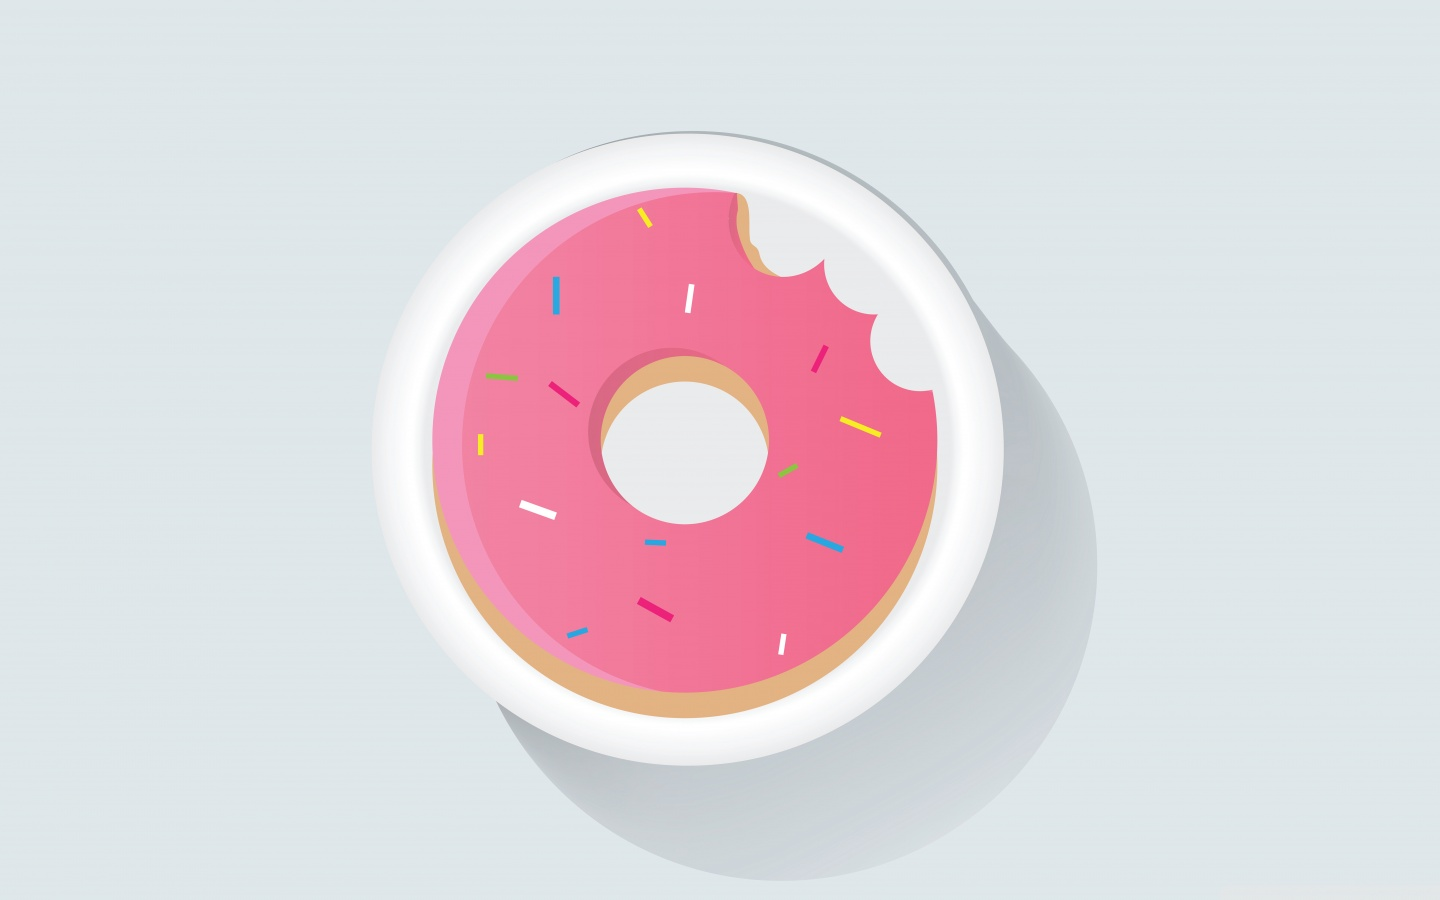 Bitten Pink Doughnut 4K HD Desktop Wallpaper for 4K Ultra HD TV 1440x900